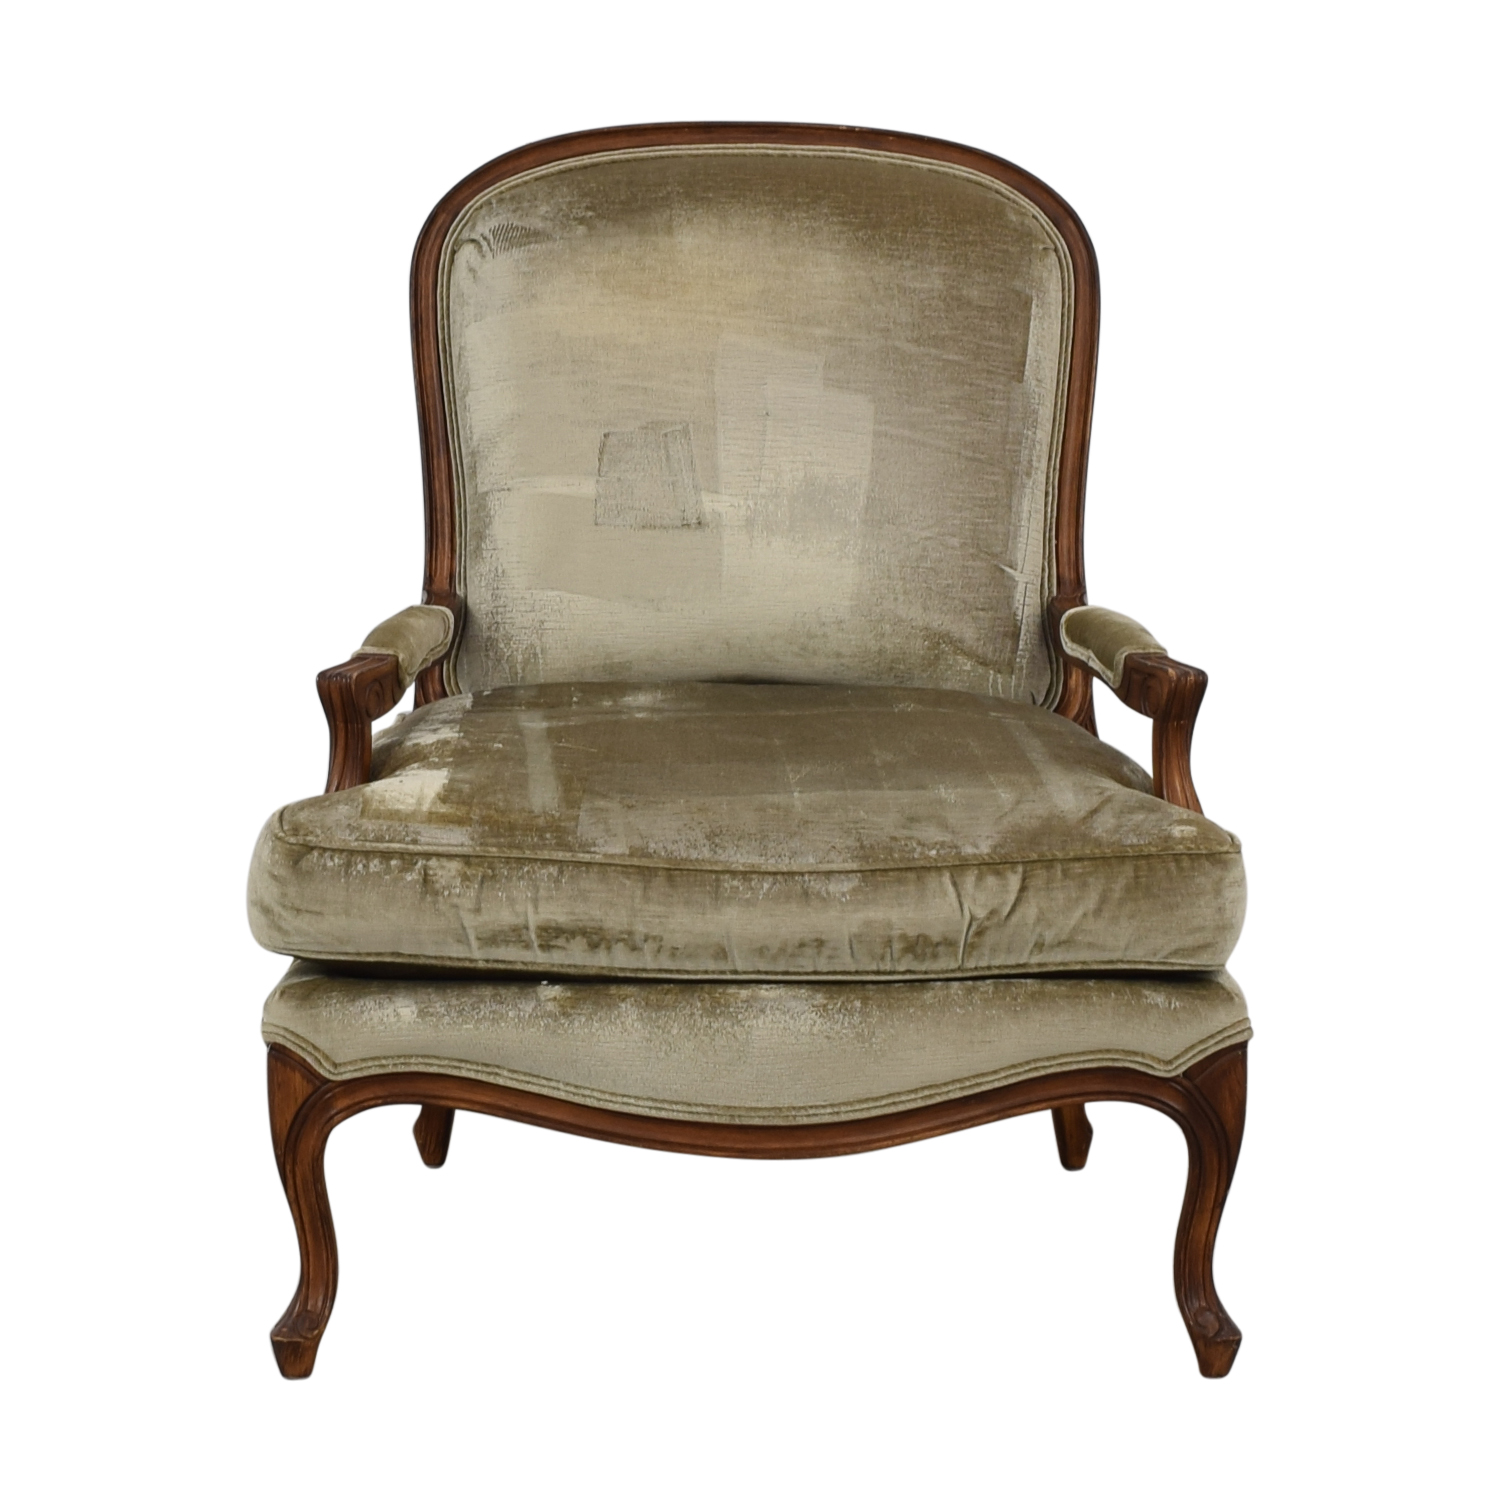 Drexel Heritage Drexel Heritage Country French Accent Chair Chairs